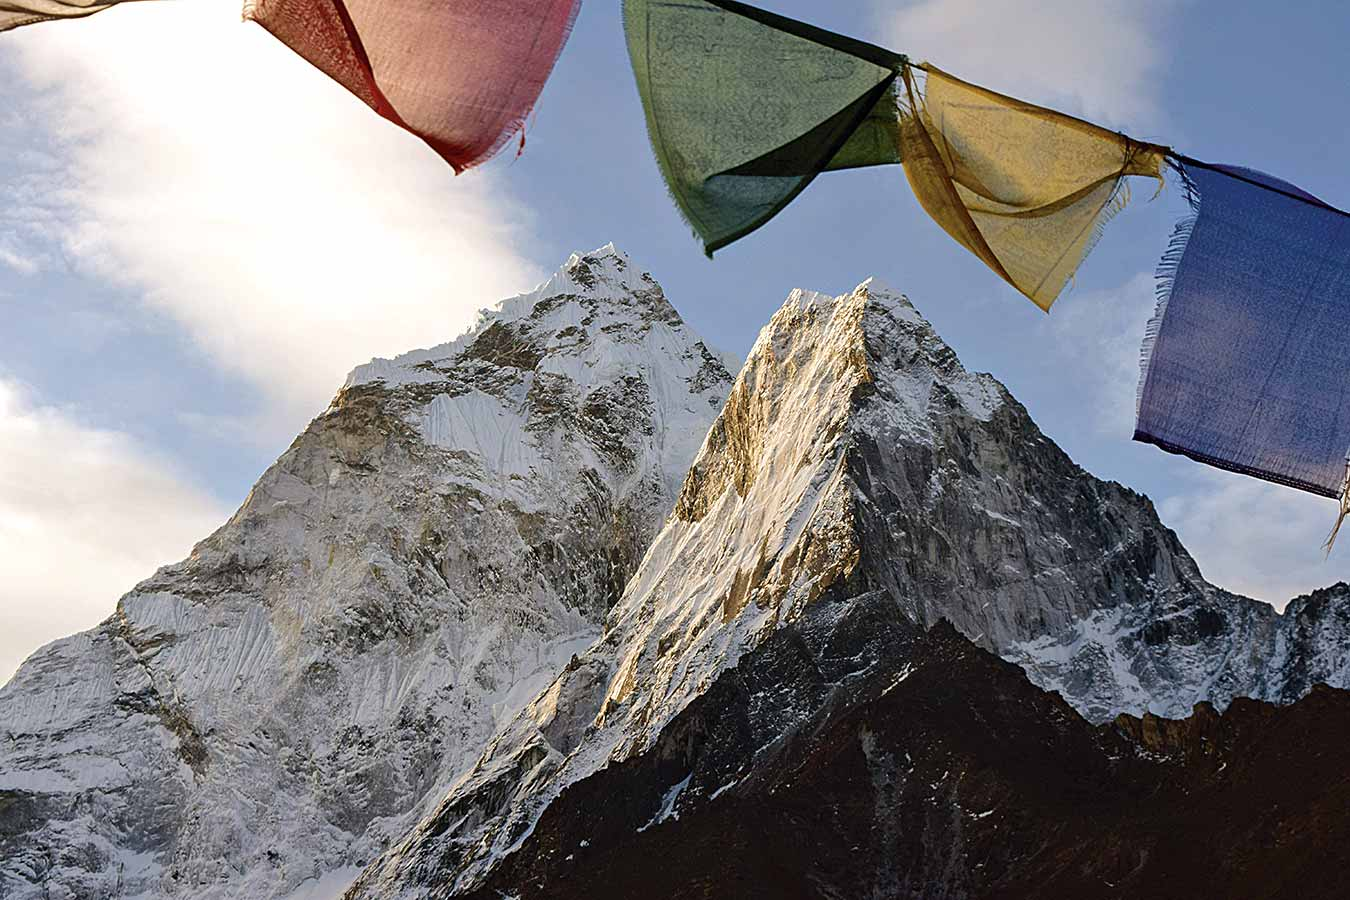 Adapting the Khumbu: Scientists grapple with climate impacts in Everest region